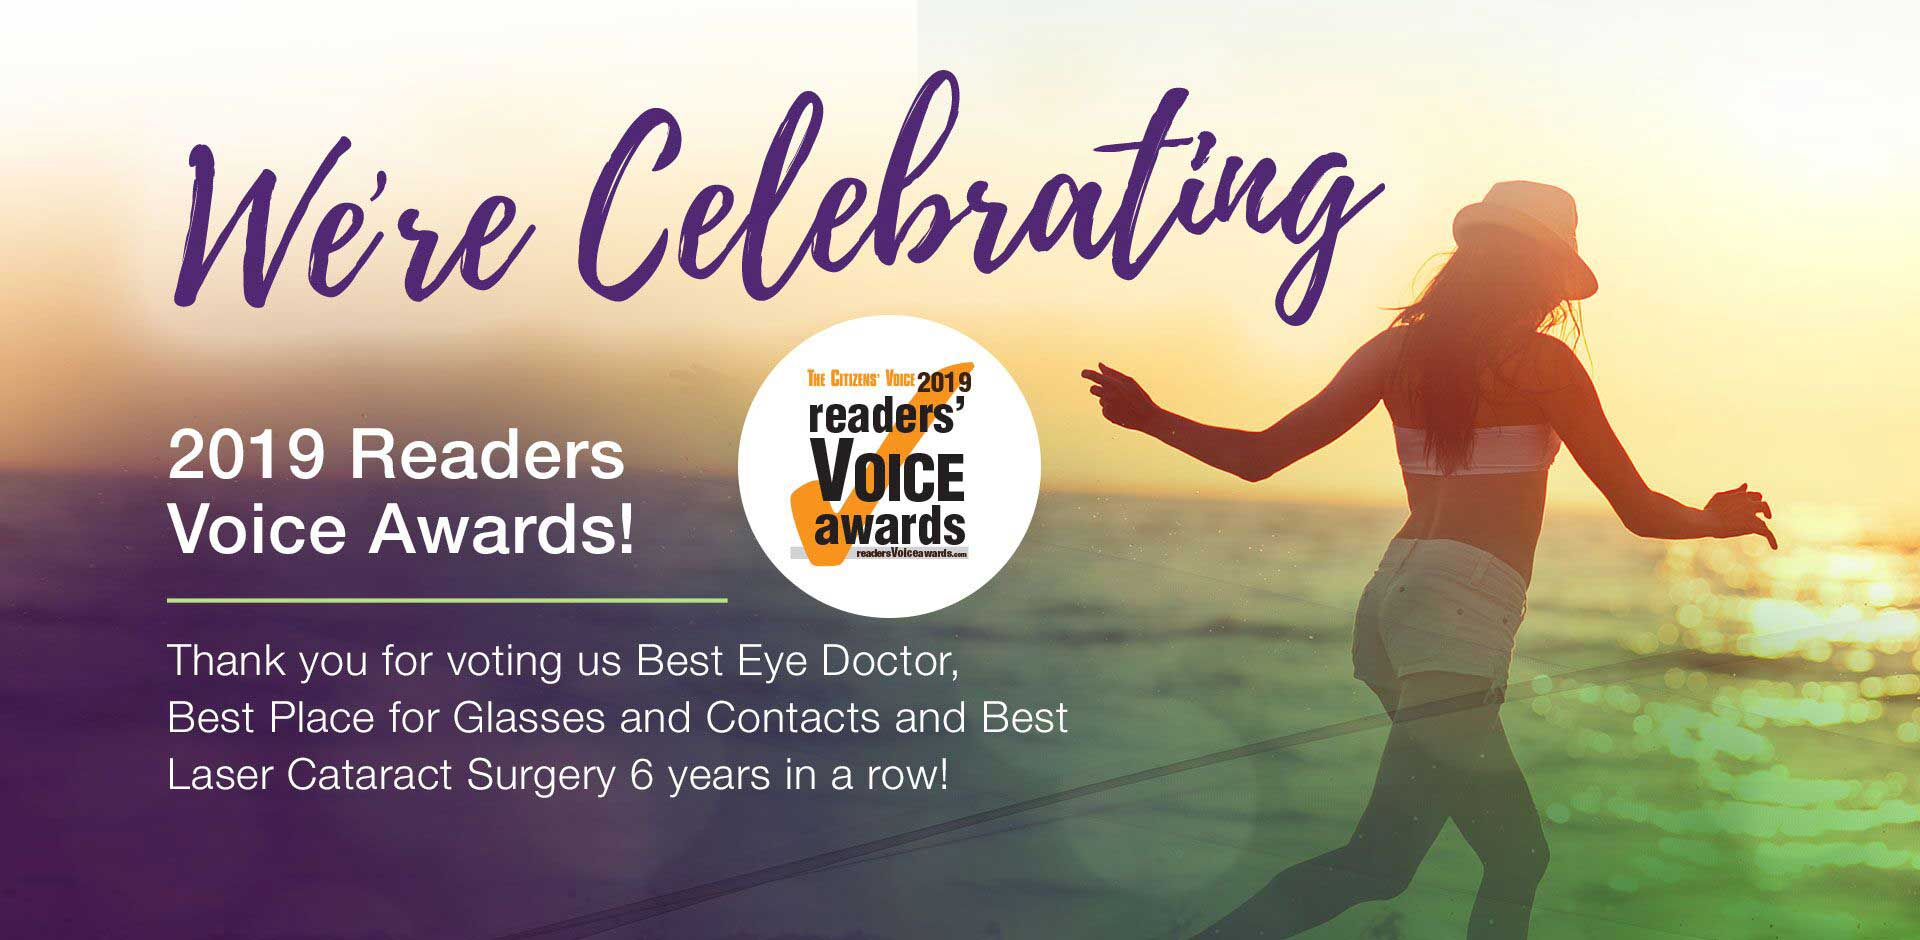 2019 Readers Vioce Award Best Eye Doctor